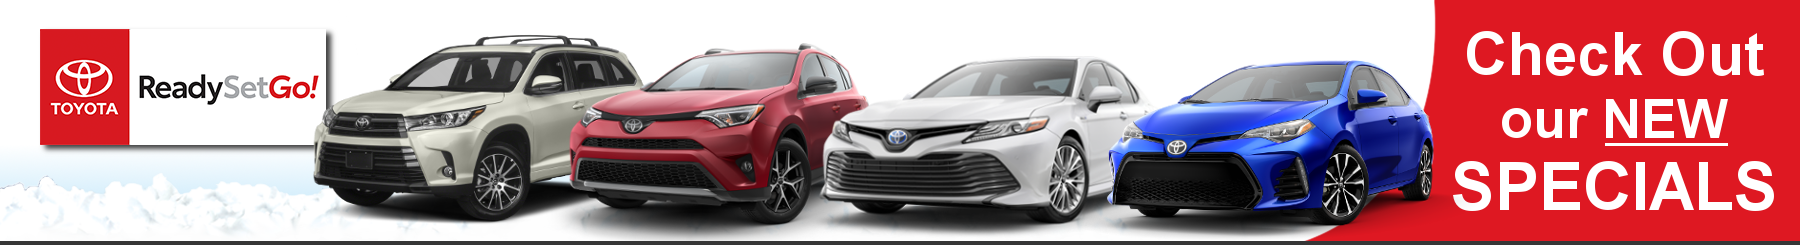 Toyota New Car Specials